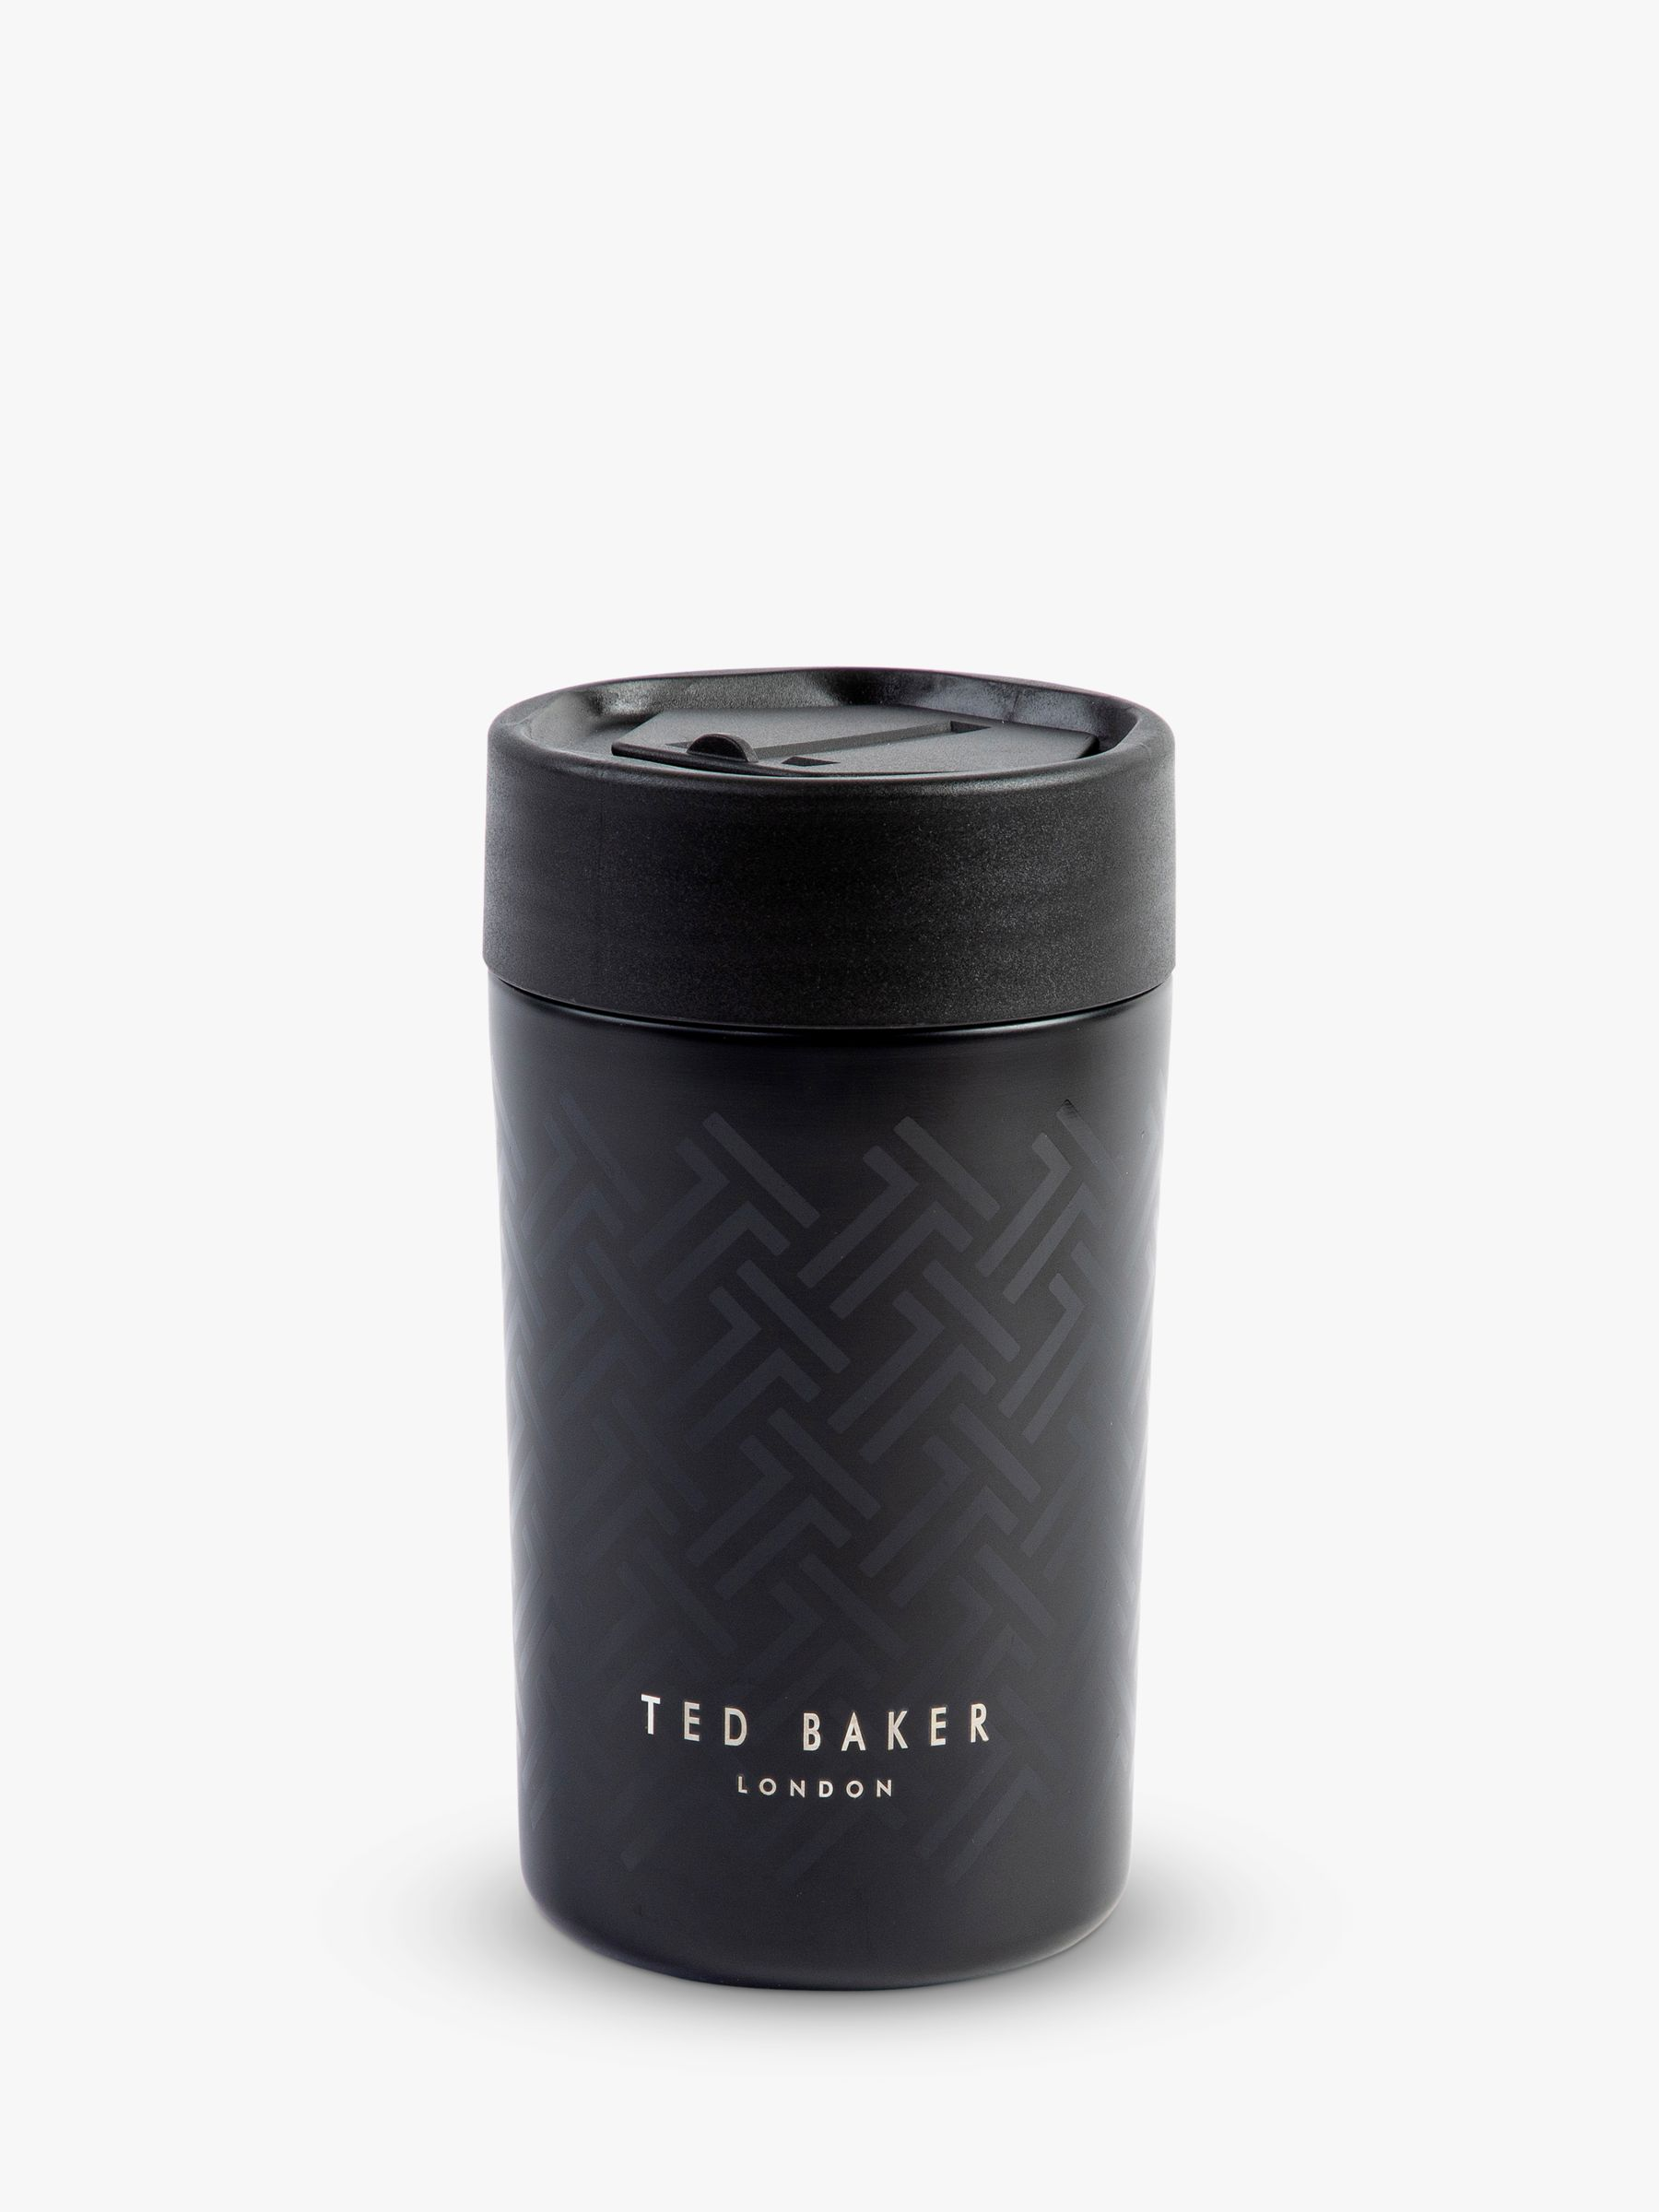 Ted Baker T Black Travel Mug 300ml At John Lewis Partners